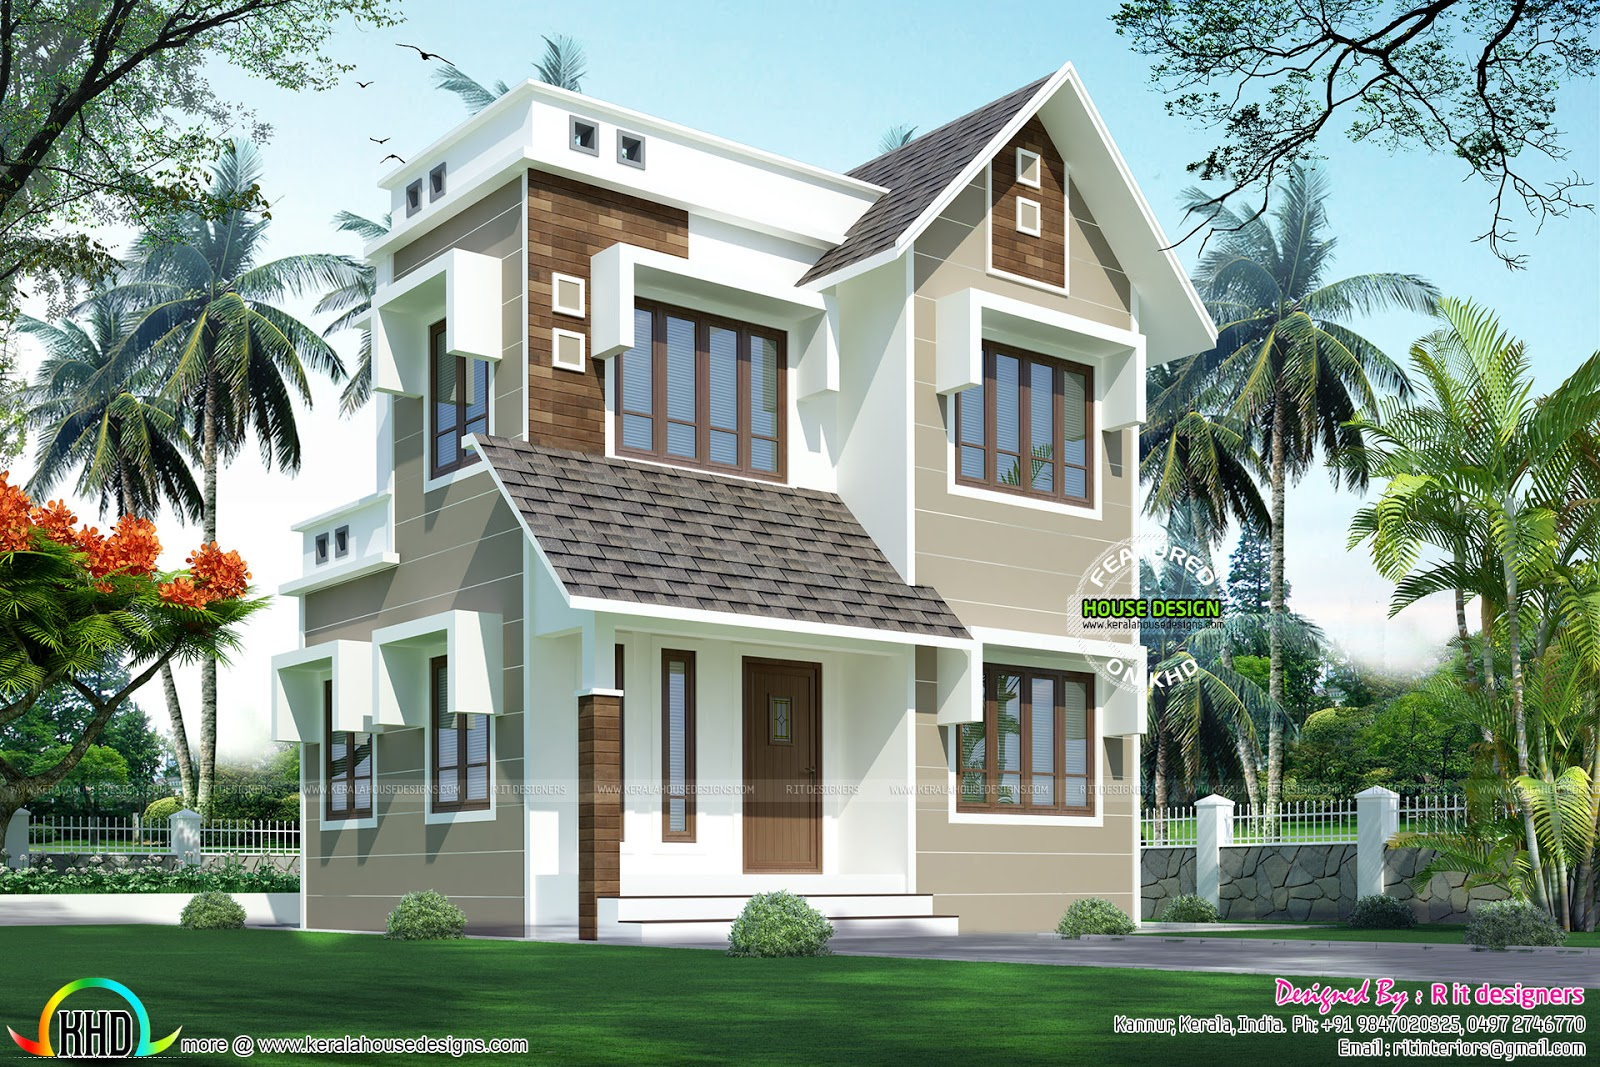 Double storied house 13 lakhs kerala home design and for Kerala house design double floor